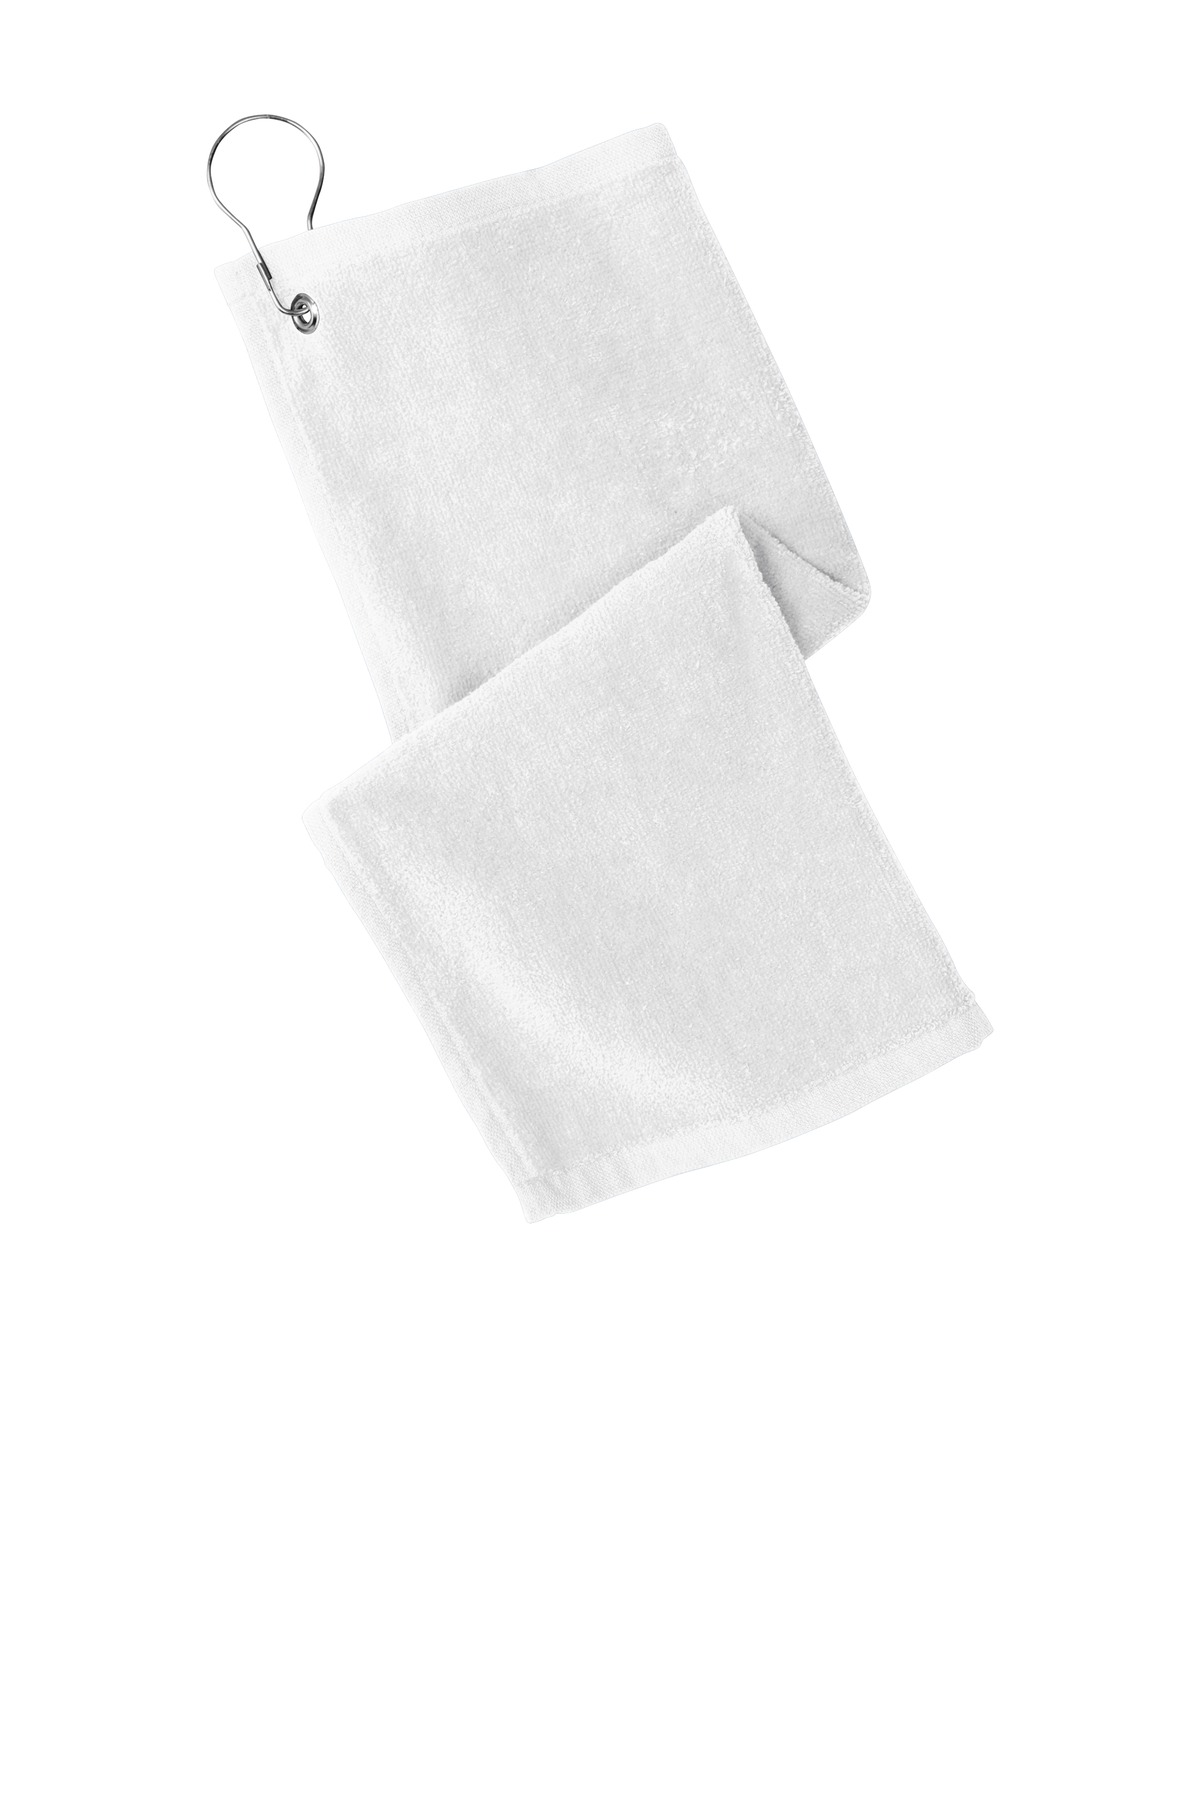 Port Authority  ®  Grommeted Hemmed Towel PT400 - White